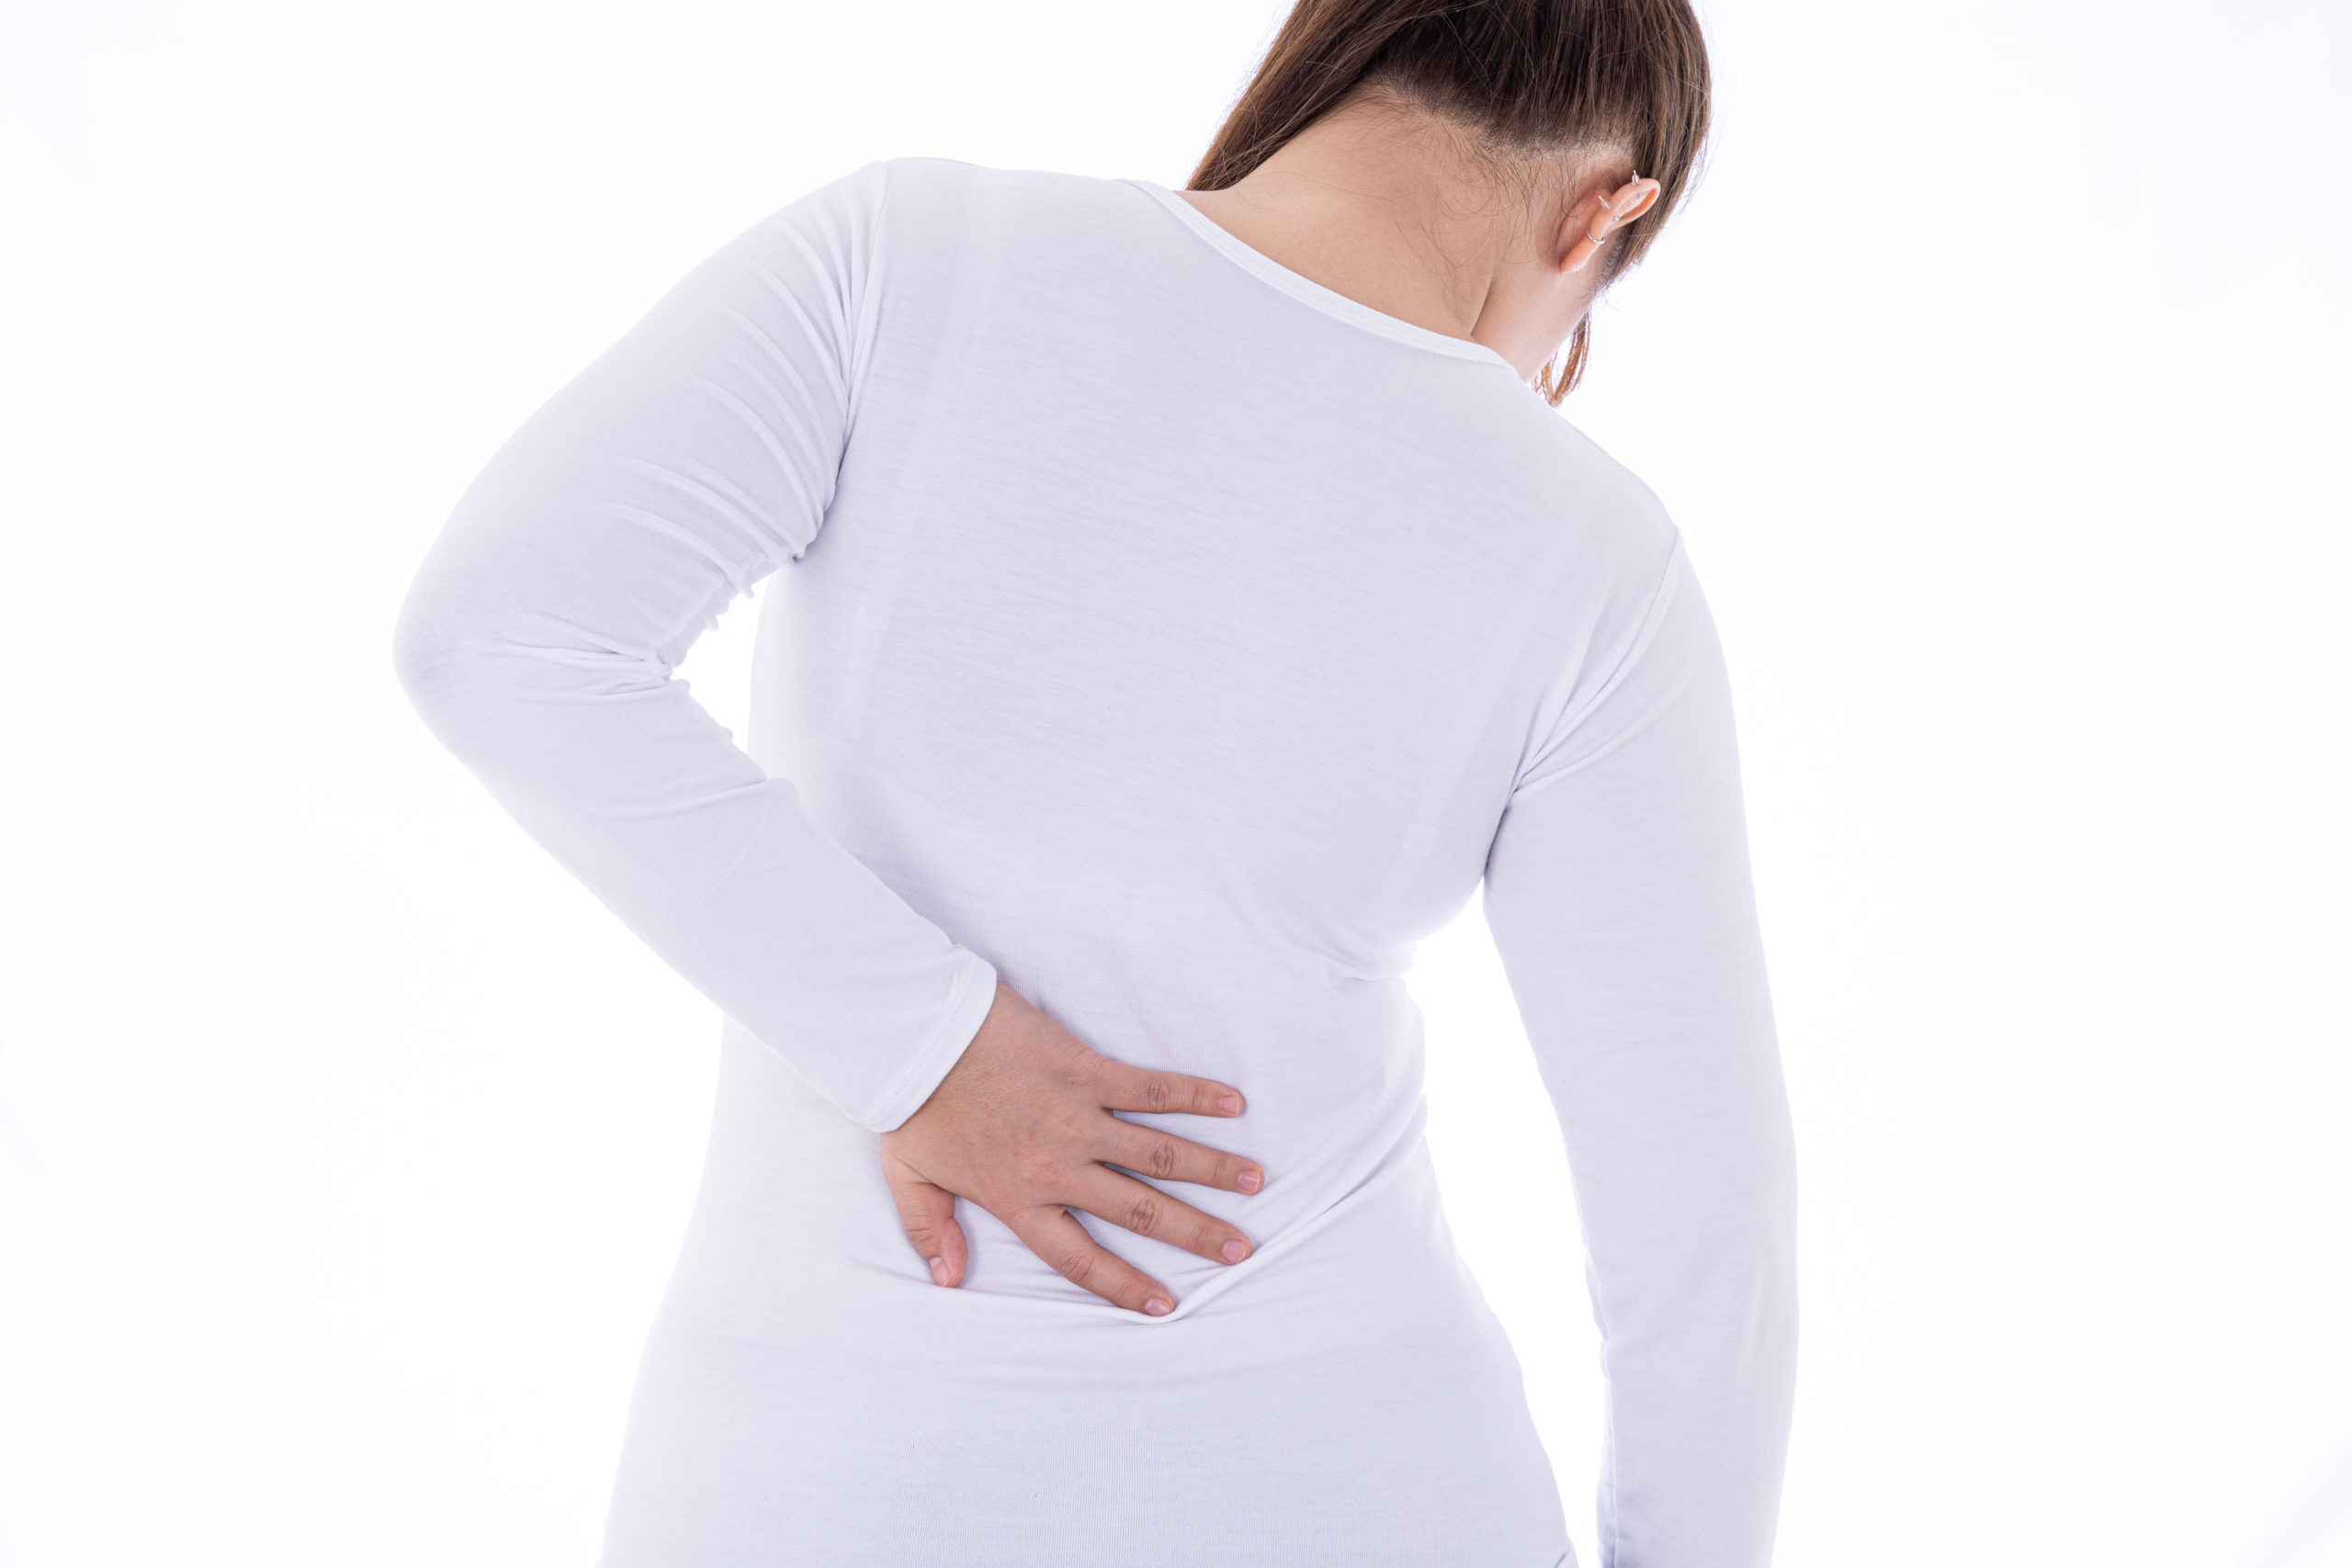 A woman feeling exhausted and suffering from waist and back pain and injury on isolated white background. Health care and medical concept.